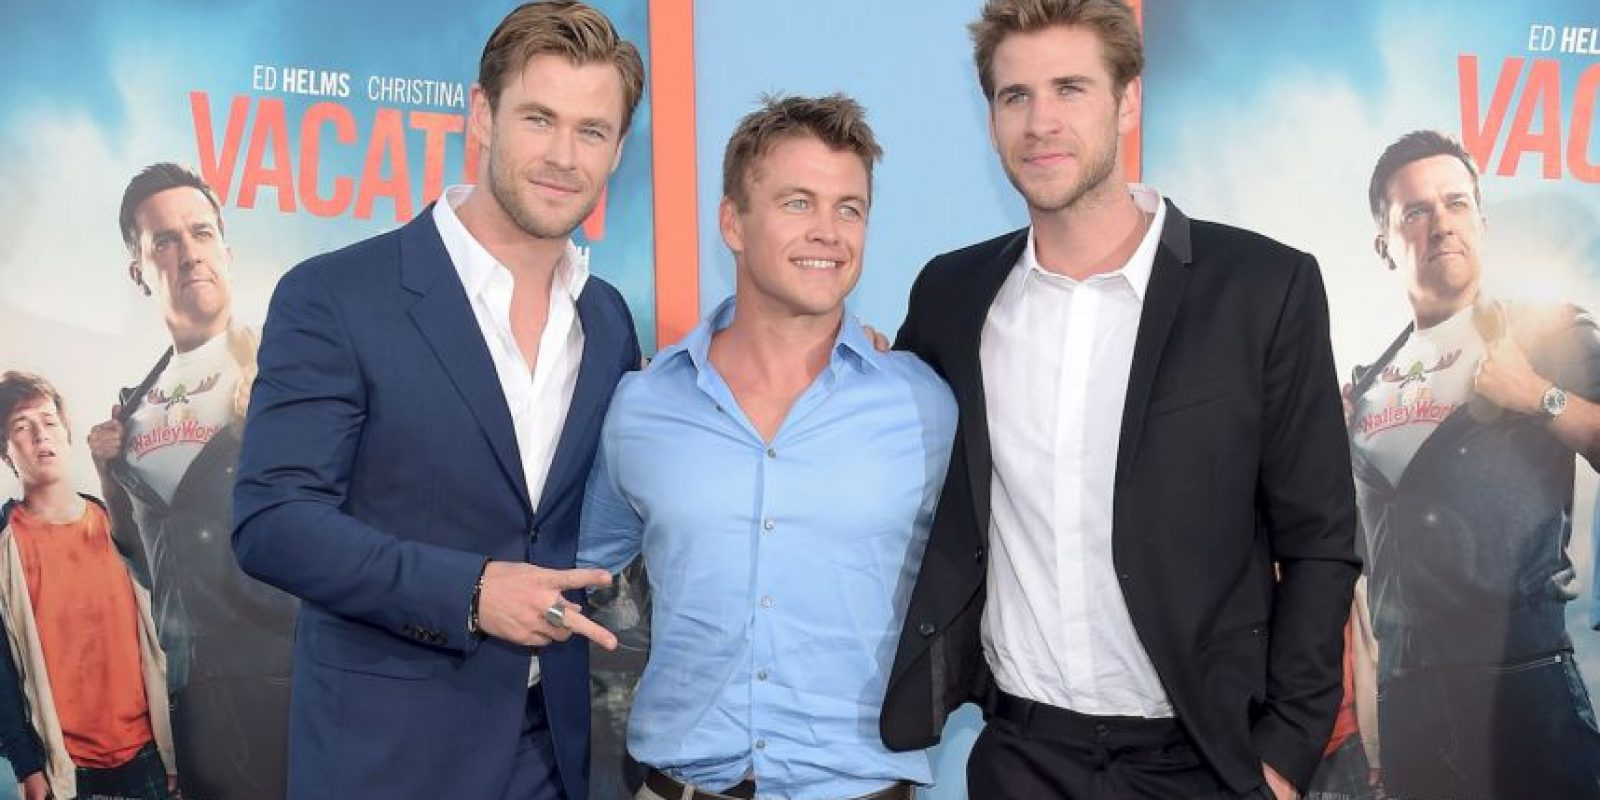 Sus dos hermanos mayores son: Luke y Chris Hemsworth Foto: Getty Images